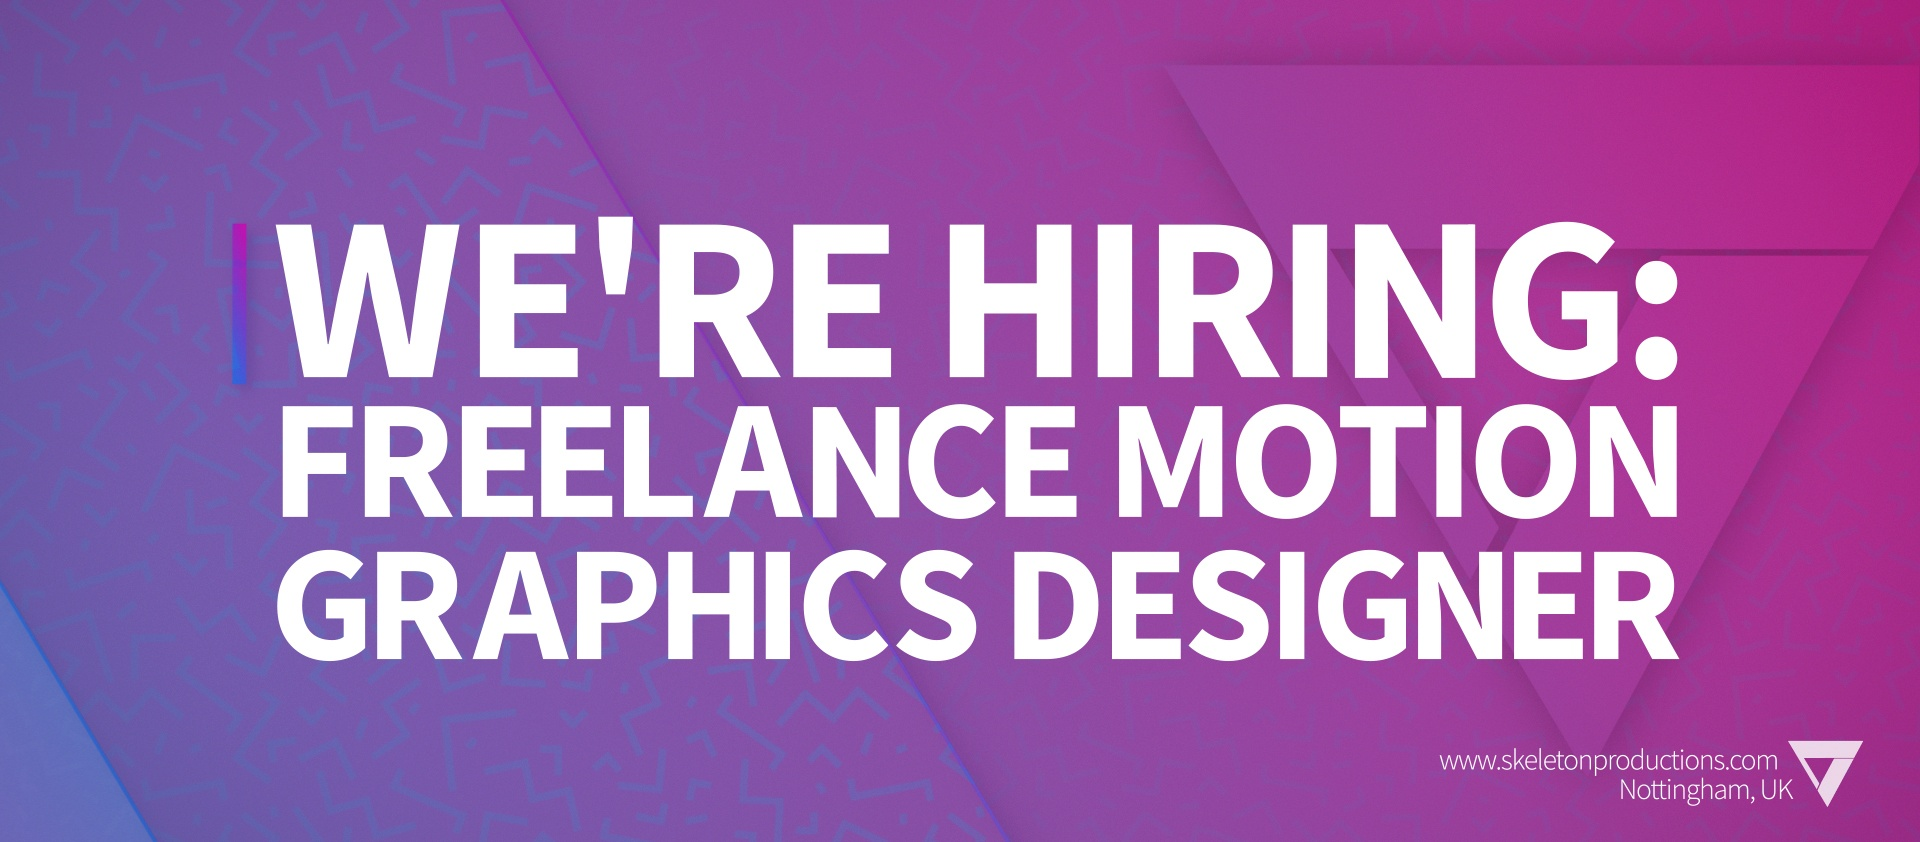 We're Hiring: Freelance Motion Graphics Designers featured image